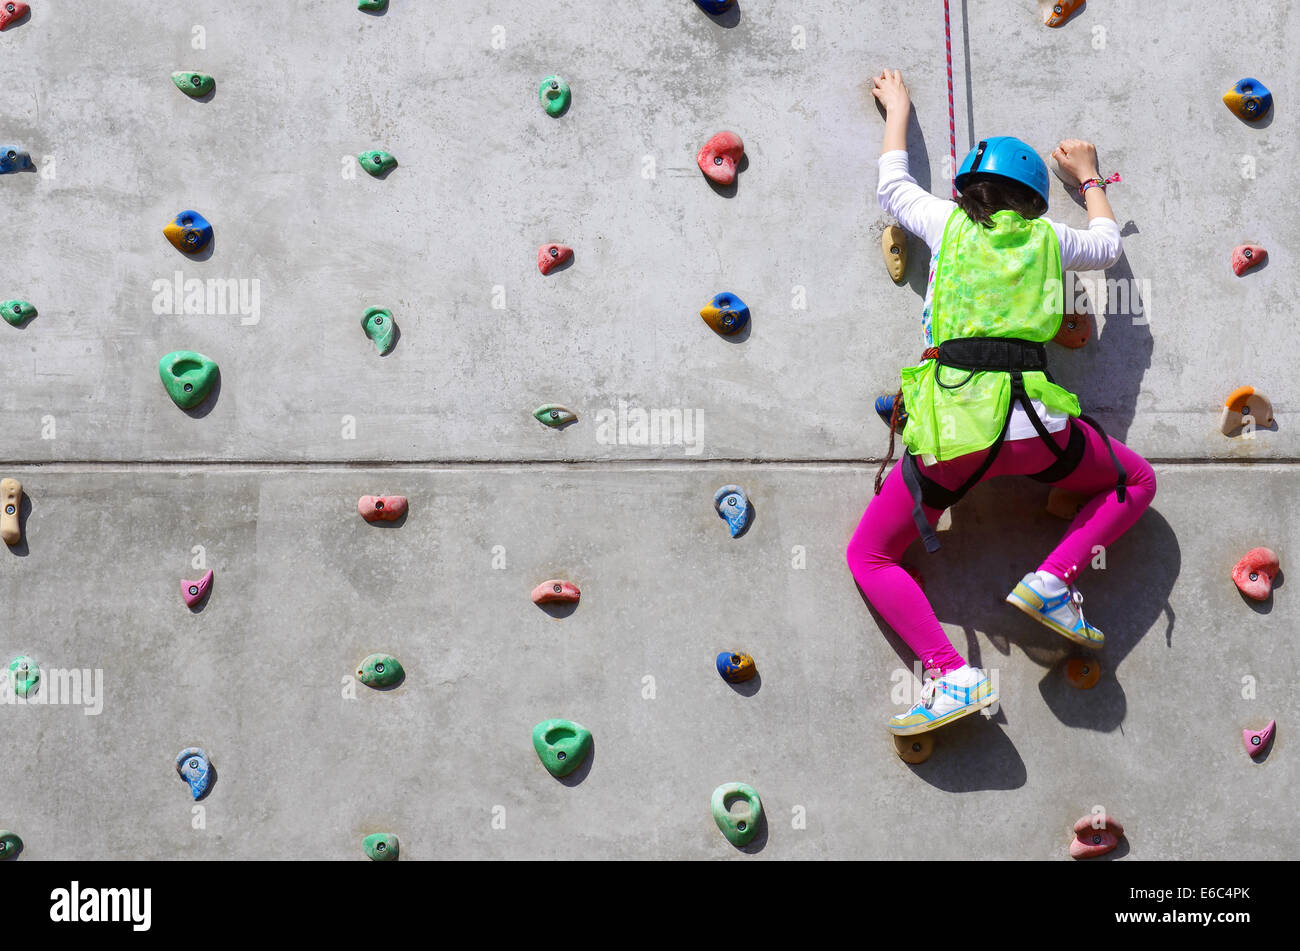 Youngster's effort in climbing a wall to reach the top - Stock Image